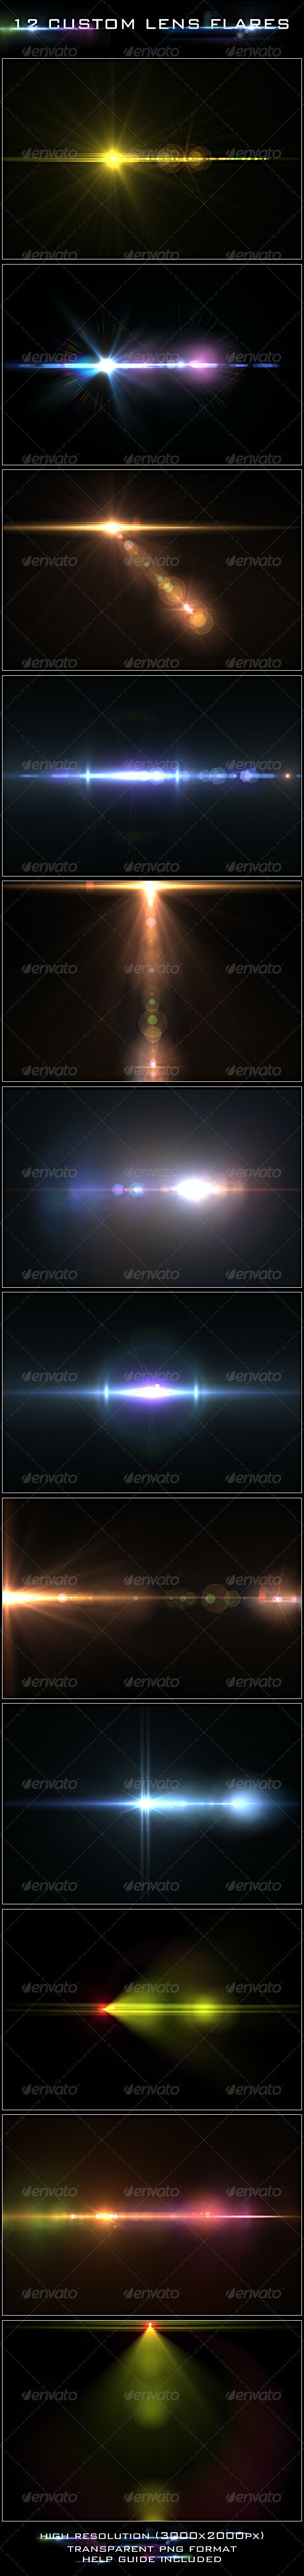 12 Custom Lens Flares - Miscellaneous Backgrounds